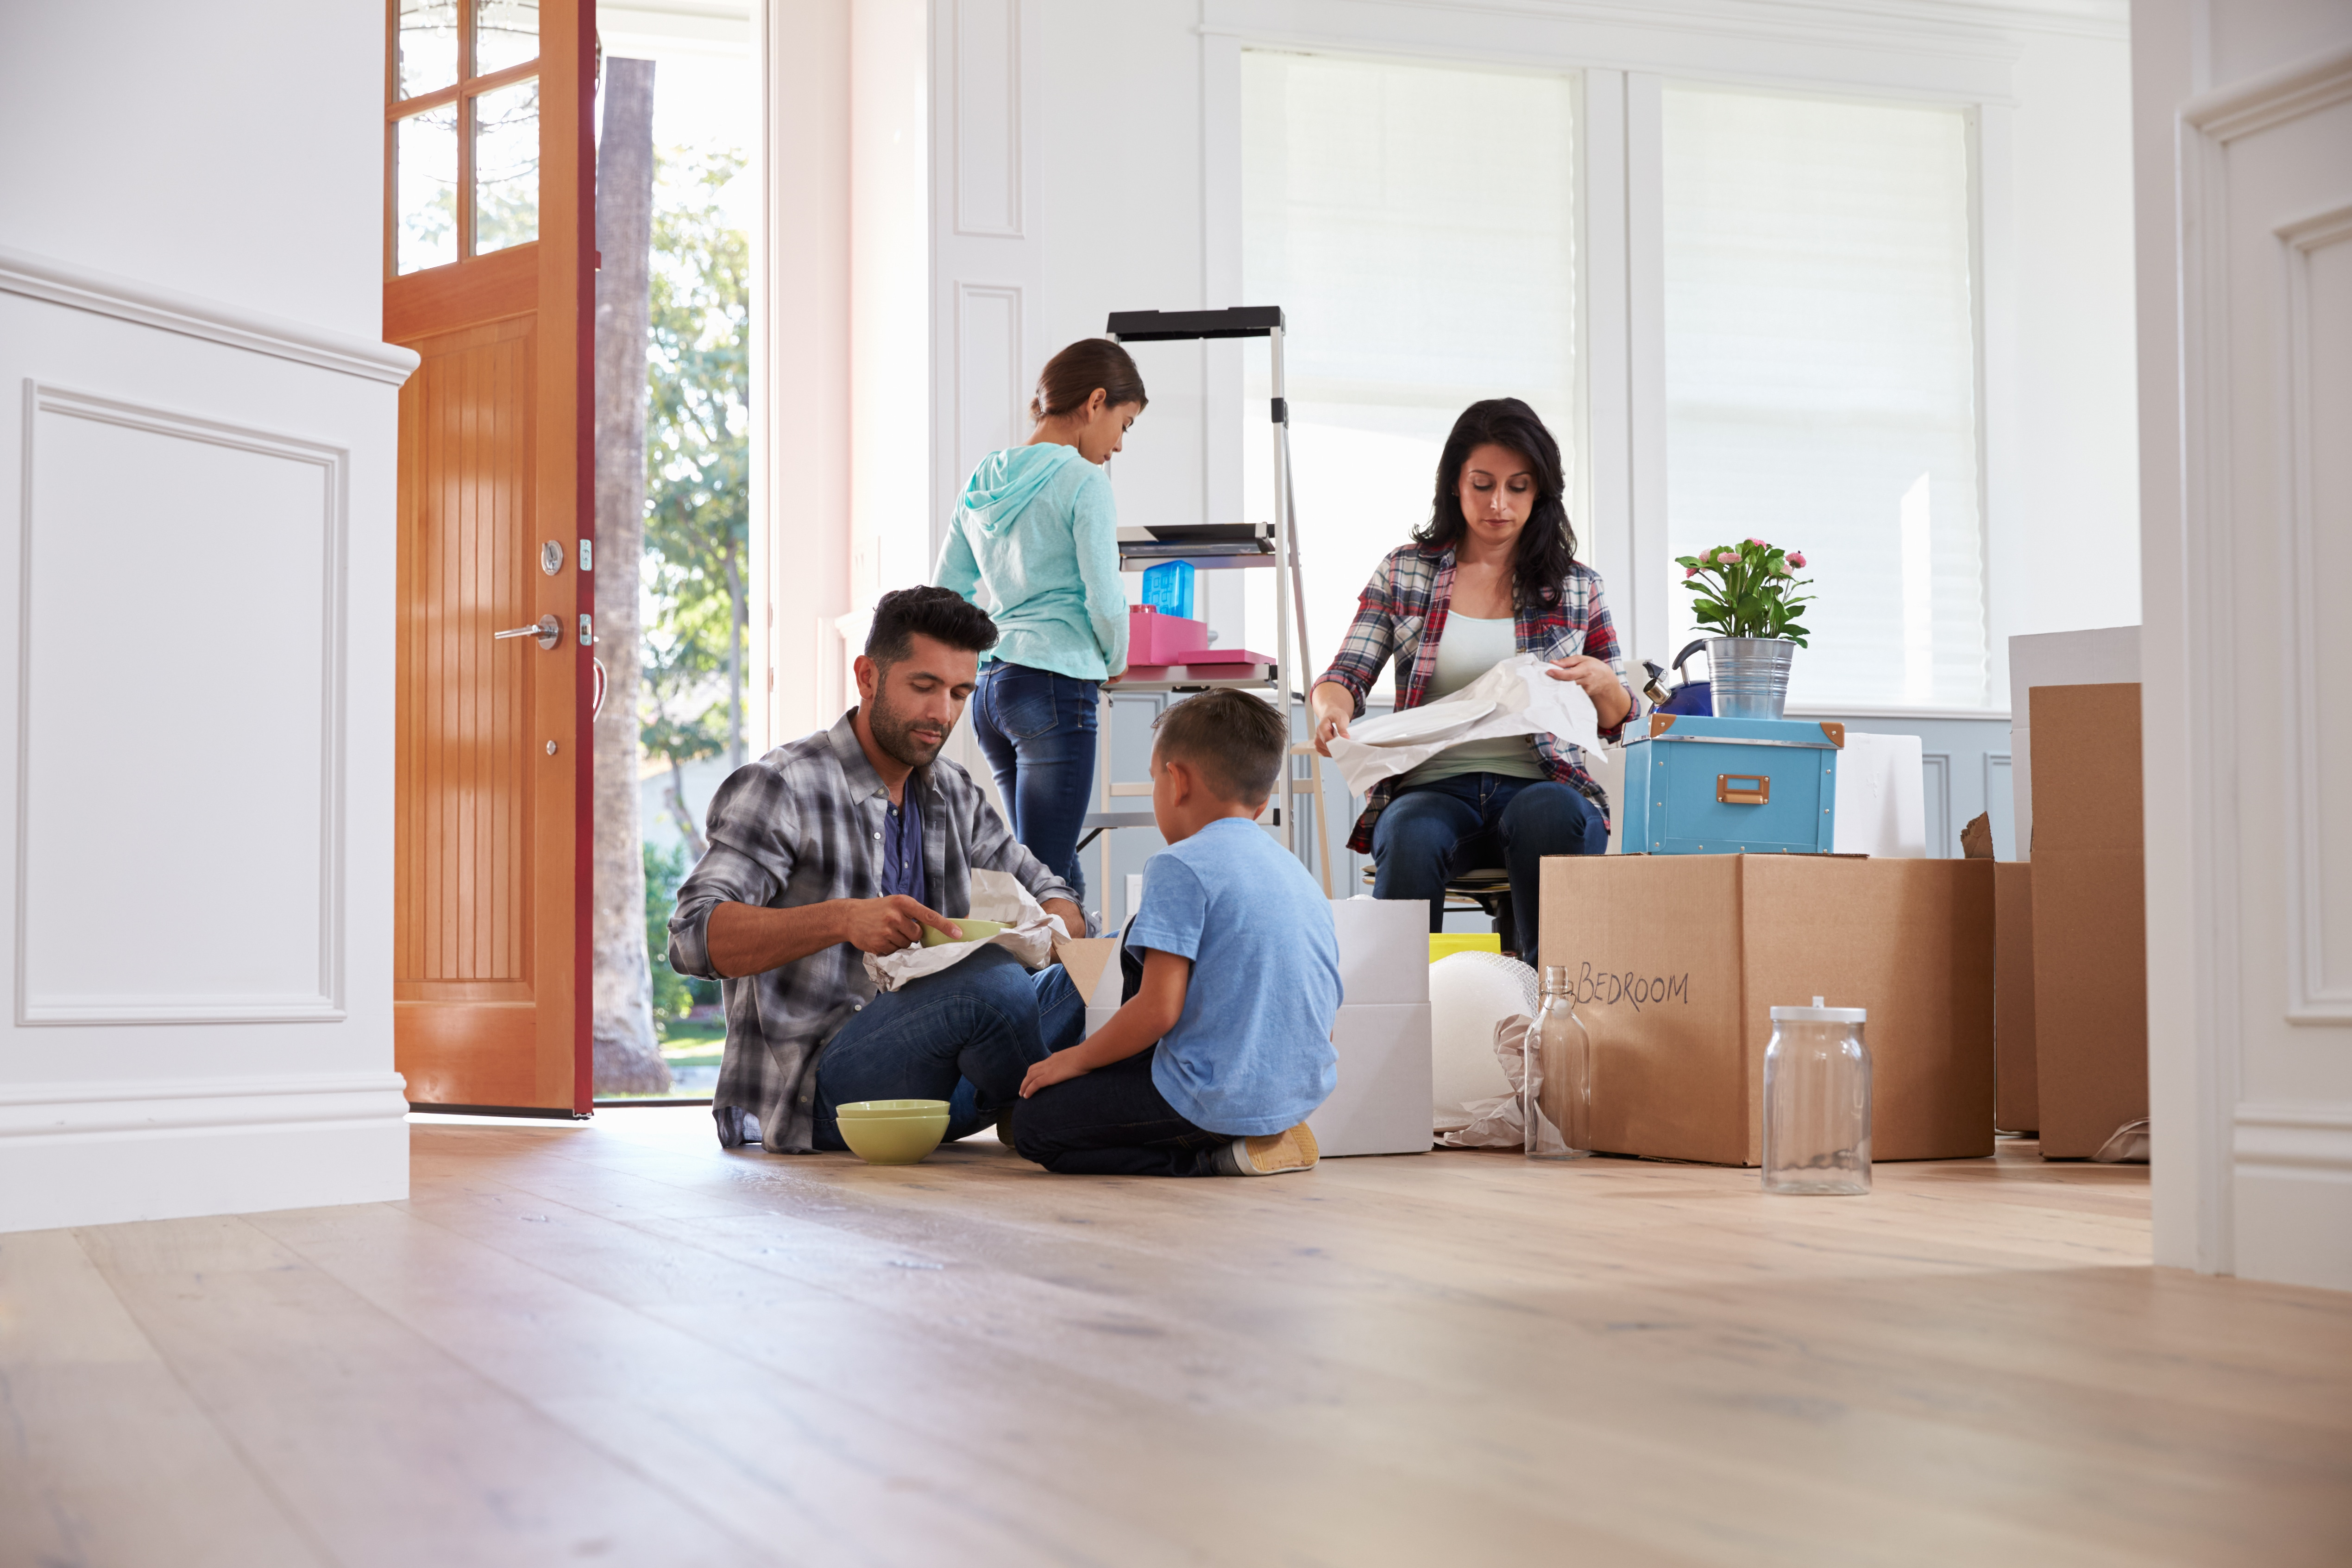 A family unpacking within a home